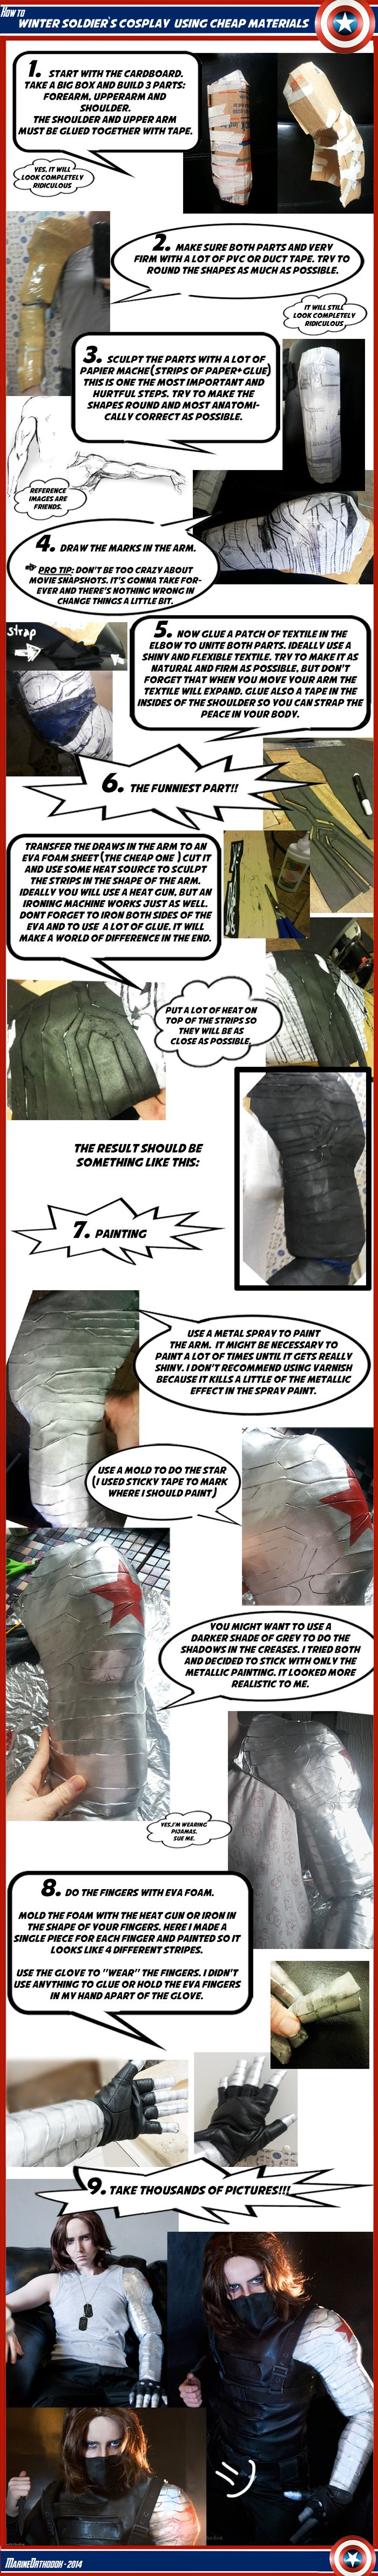 XD / TUTORIAL - Winter Soldier's metal arm by MarineOrthodox on deviantART